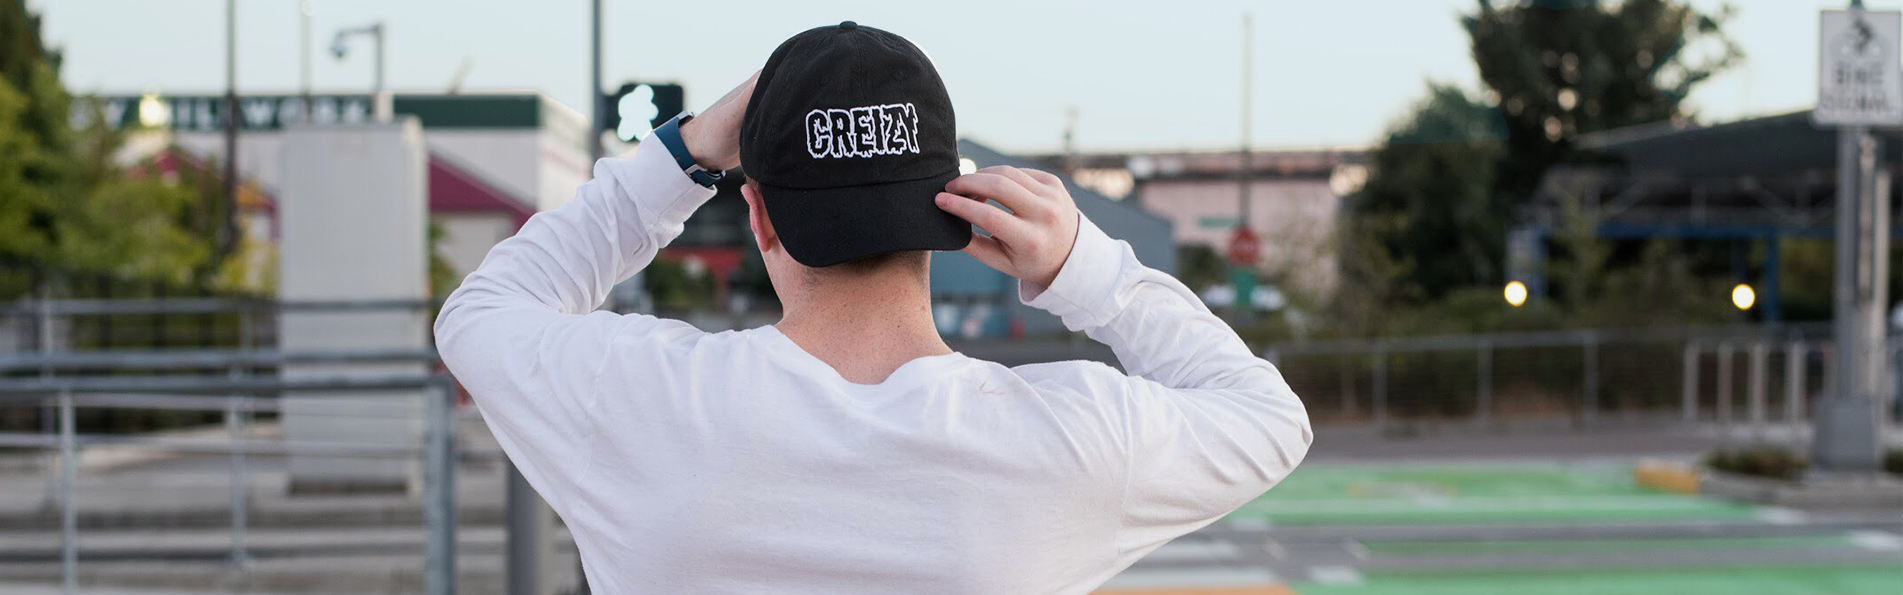 Creizy Clothing